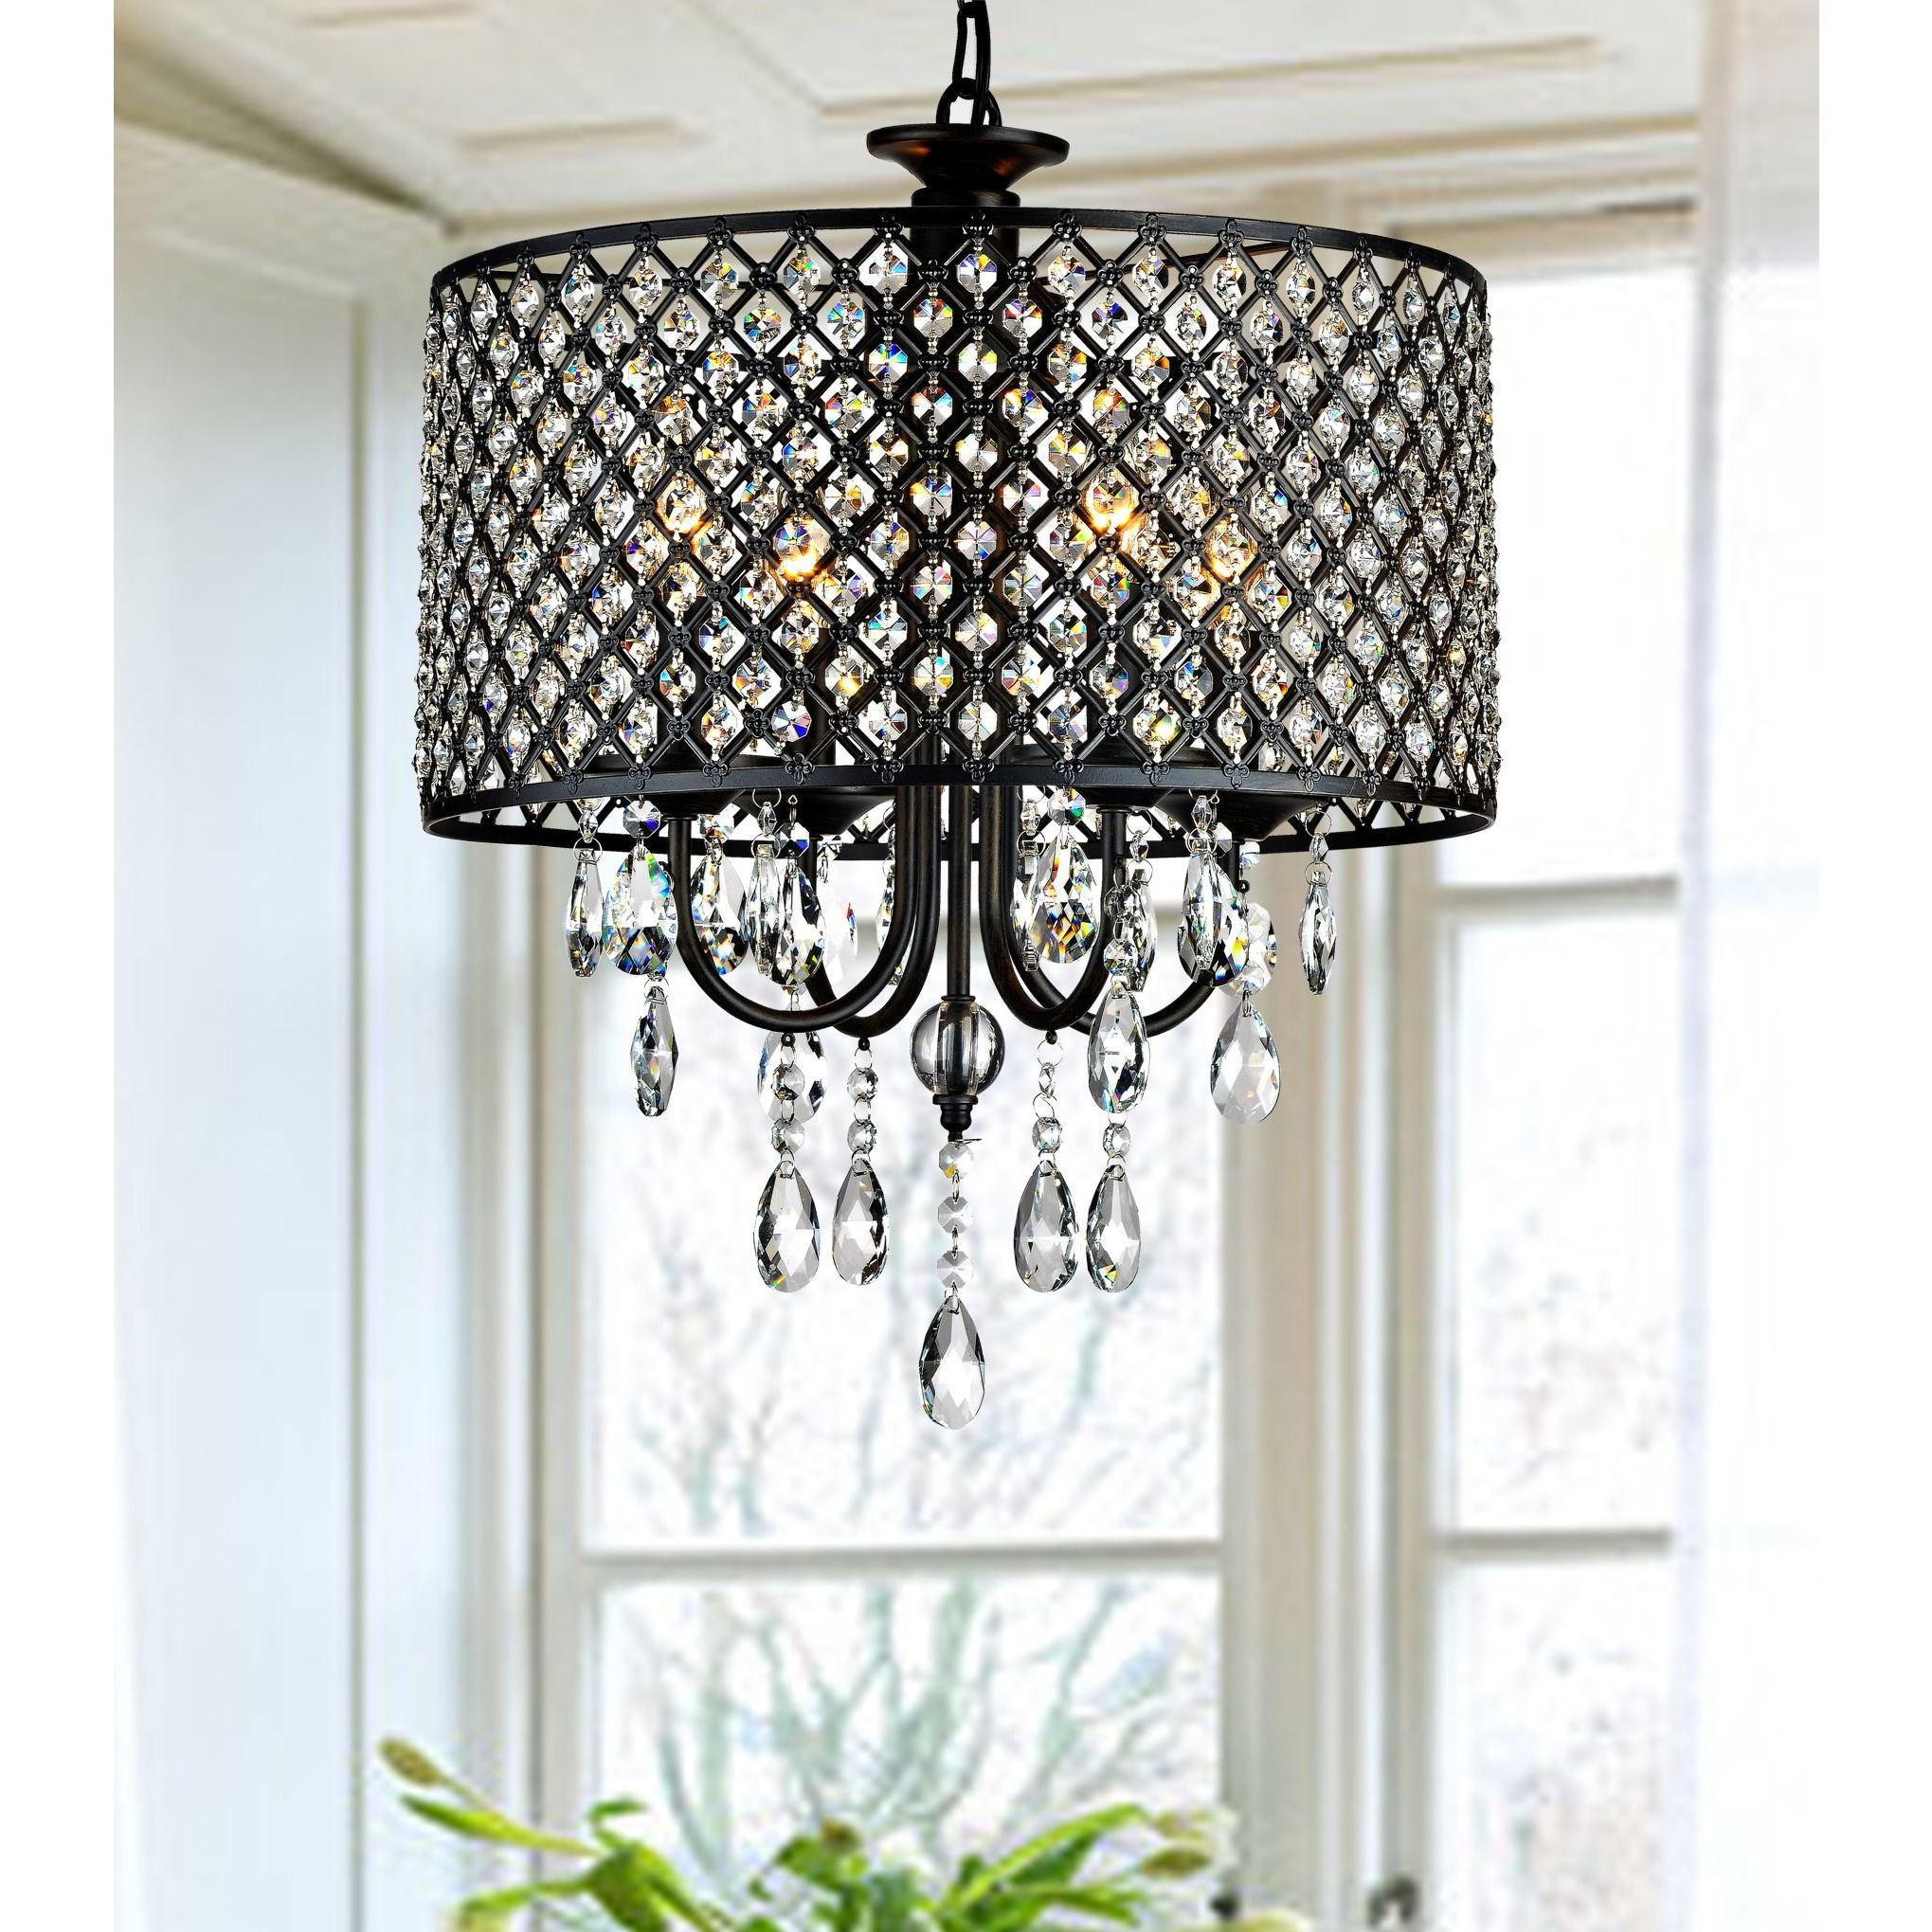 Trendy Porch & Den Cherrywood Merrie Lynn Antique Black 4 Light Pertaining To Aurore 4 Light Crystal Chandeliers (View 18 of 20)